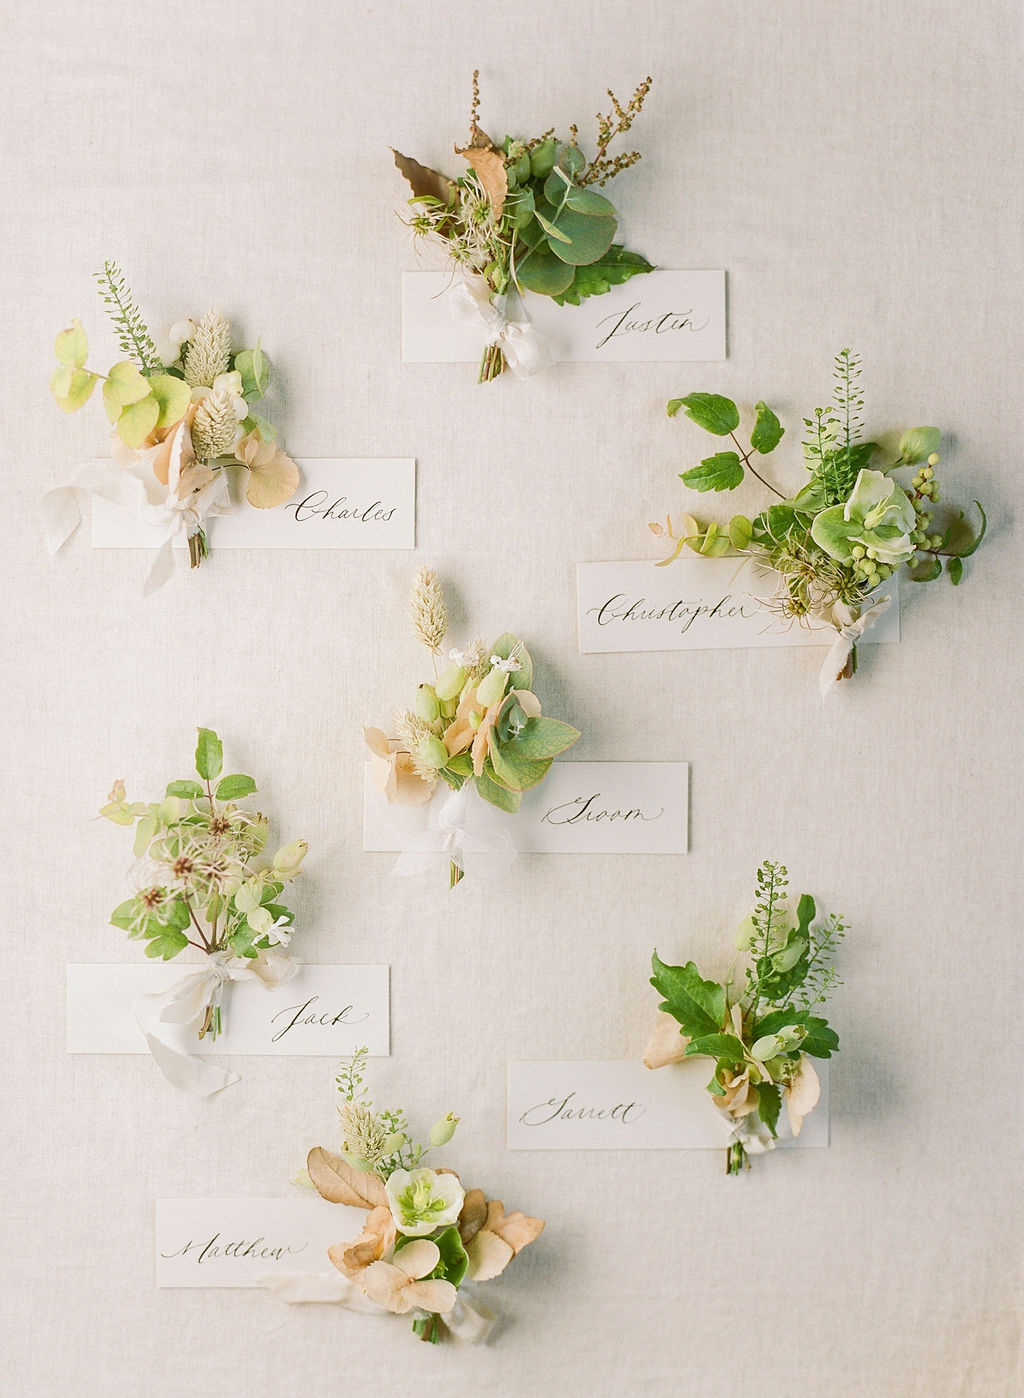 boutonnieres with dried and fresh plants